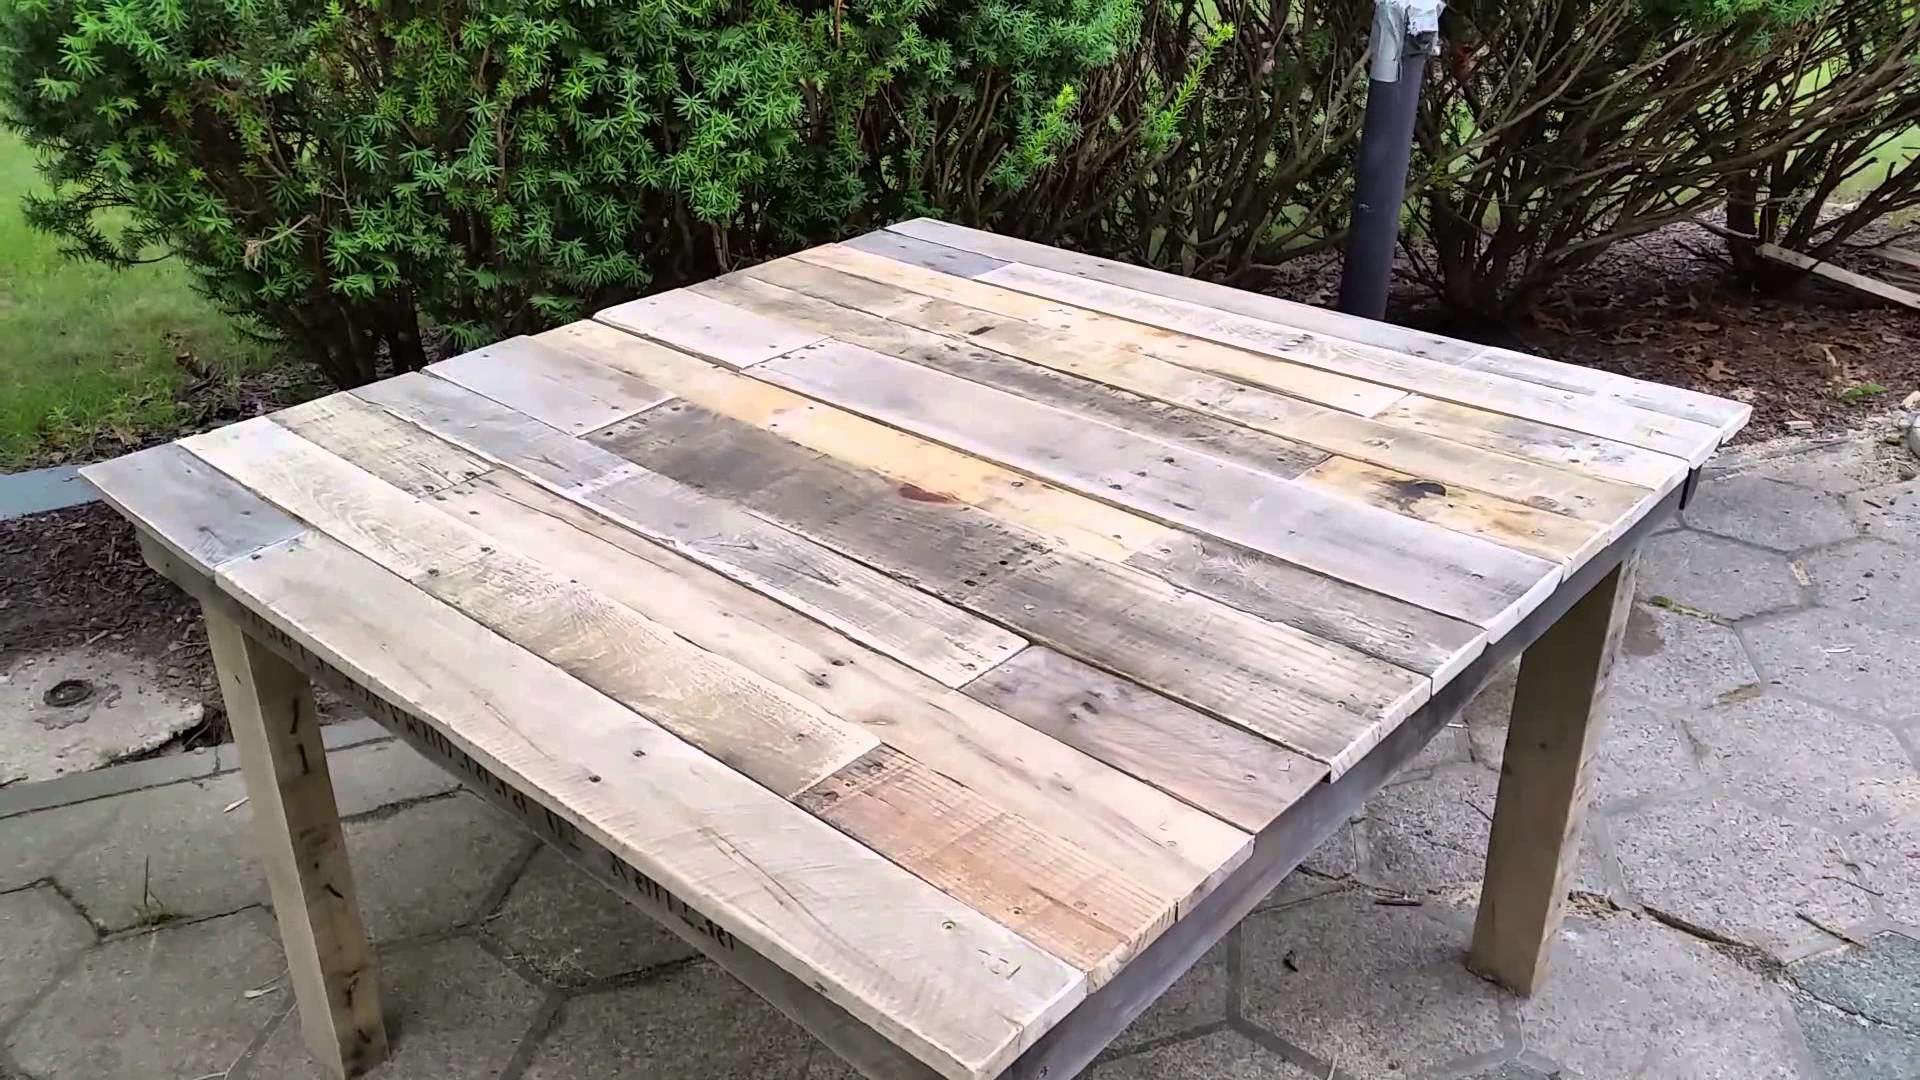 DIY giveaways & tutorials- DIY Pallet Table - 100% Pallet Wood Table ~ Mesa de Madera de Palets